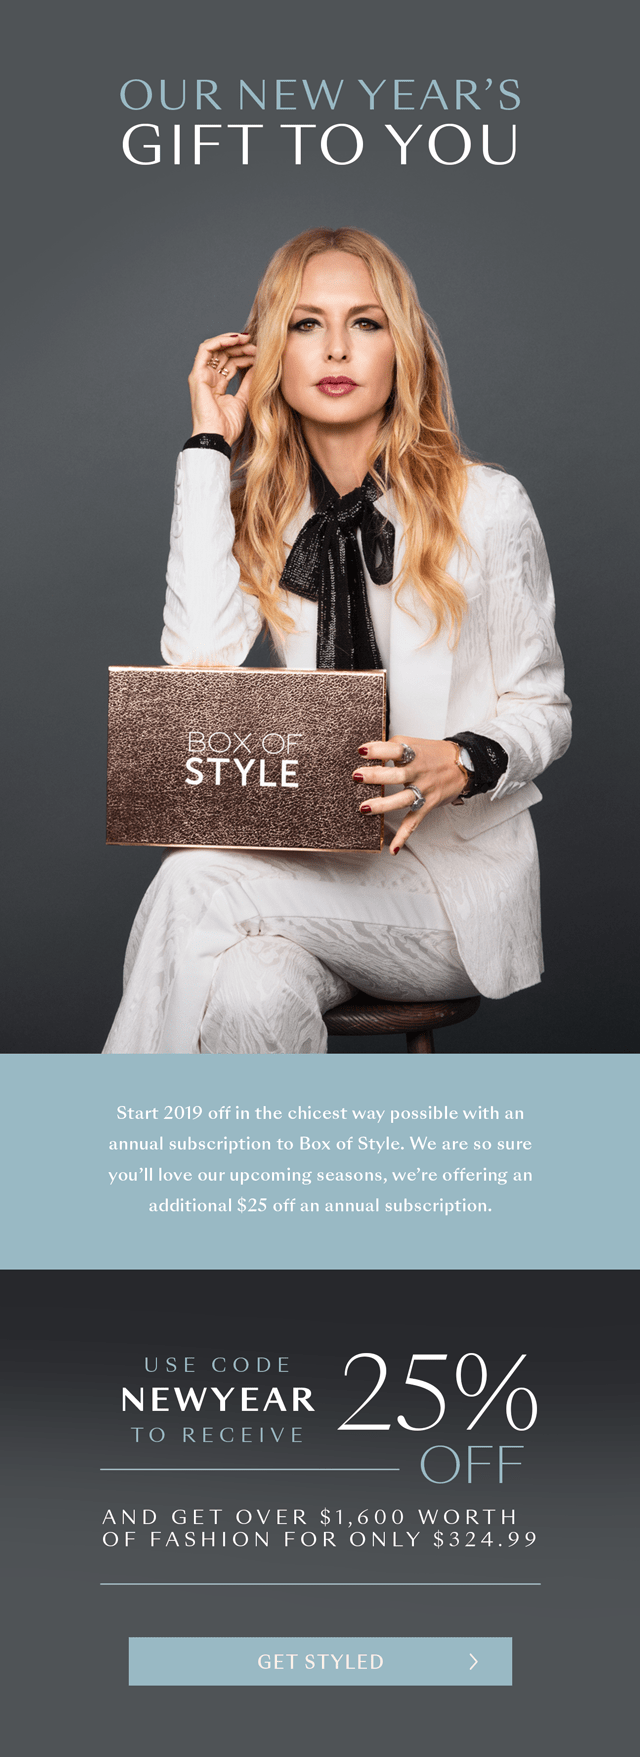 Box of Style by Rachel Zoe New Year Coupon: Get $25 Off On Annual Subscription!